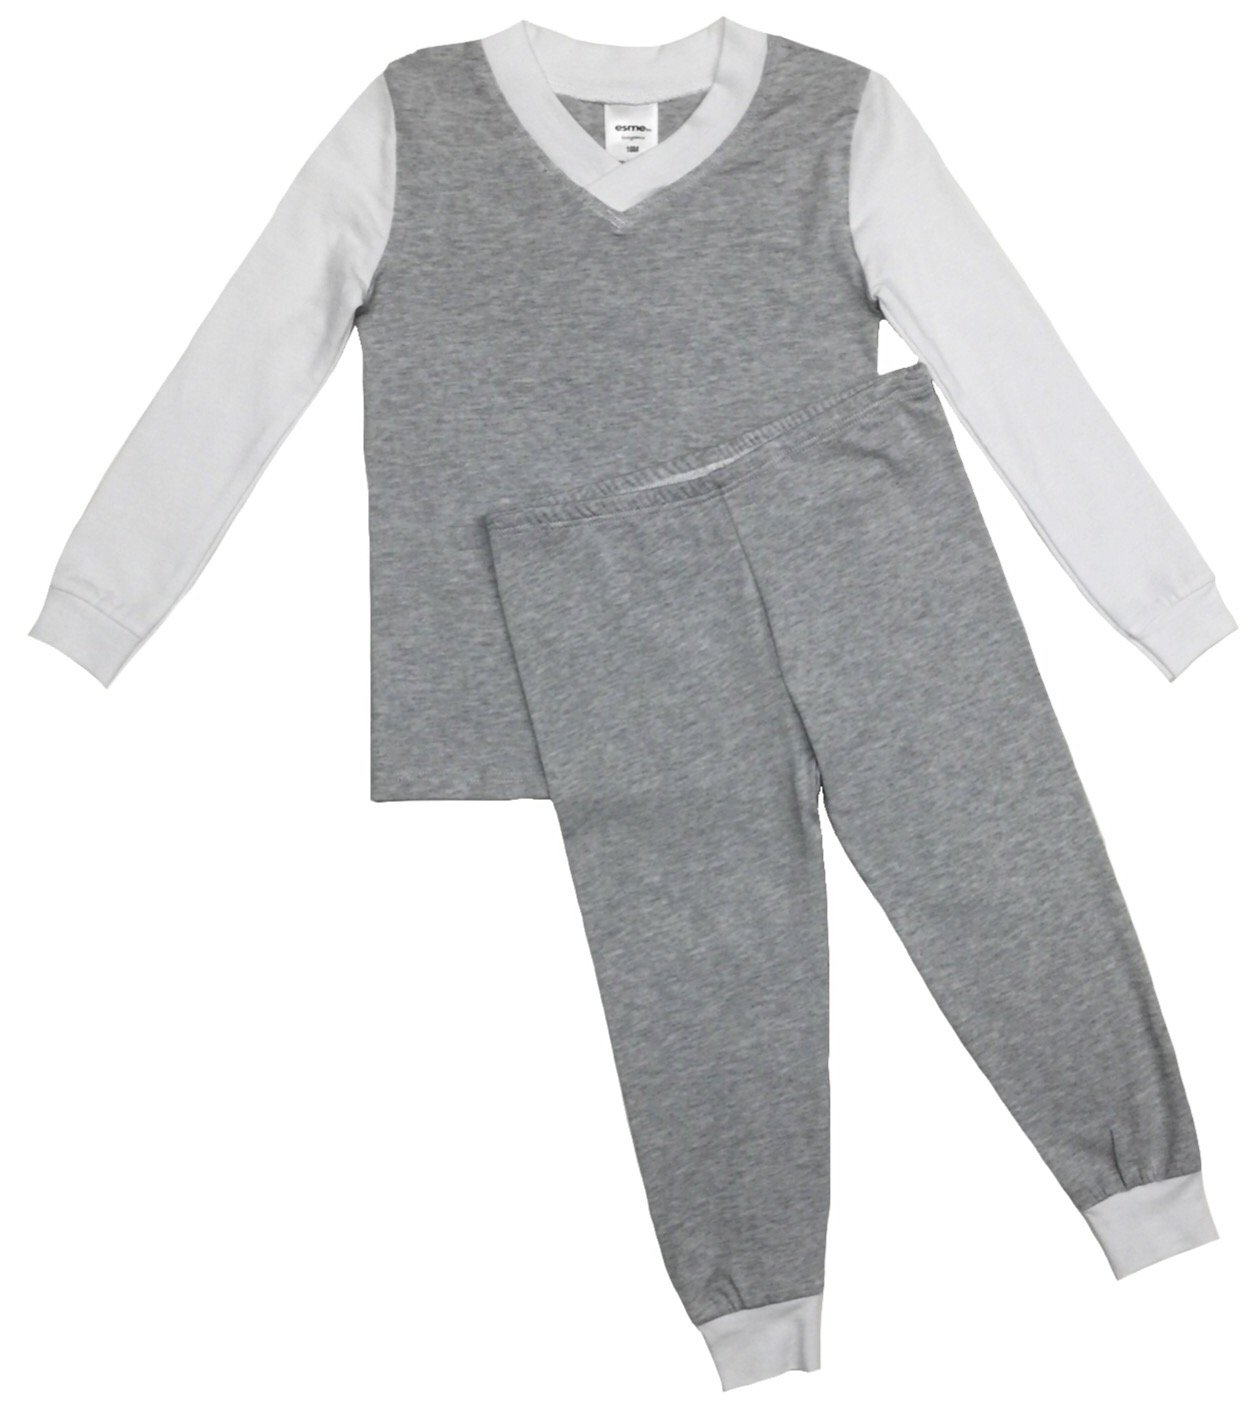 Esme Boys Pajamas Long Sleeve Top & Pant Set 8 Grey / White